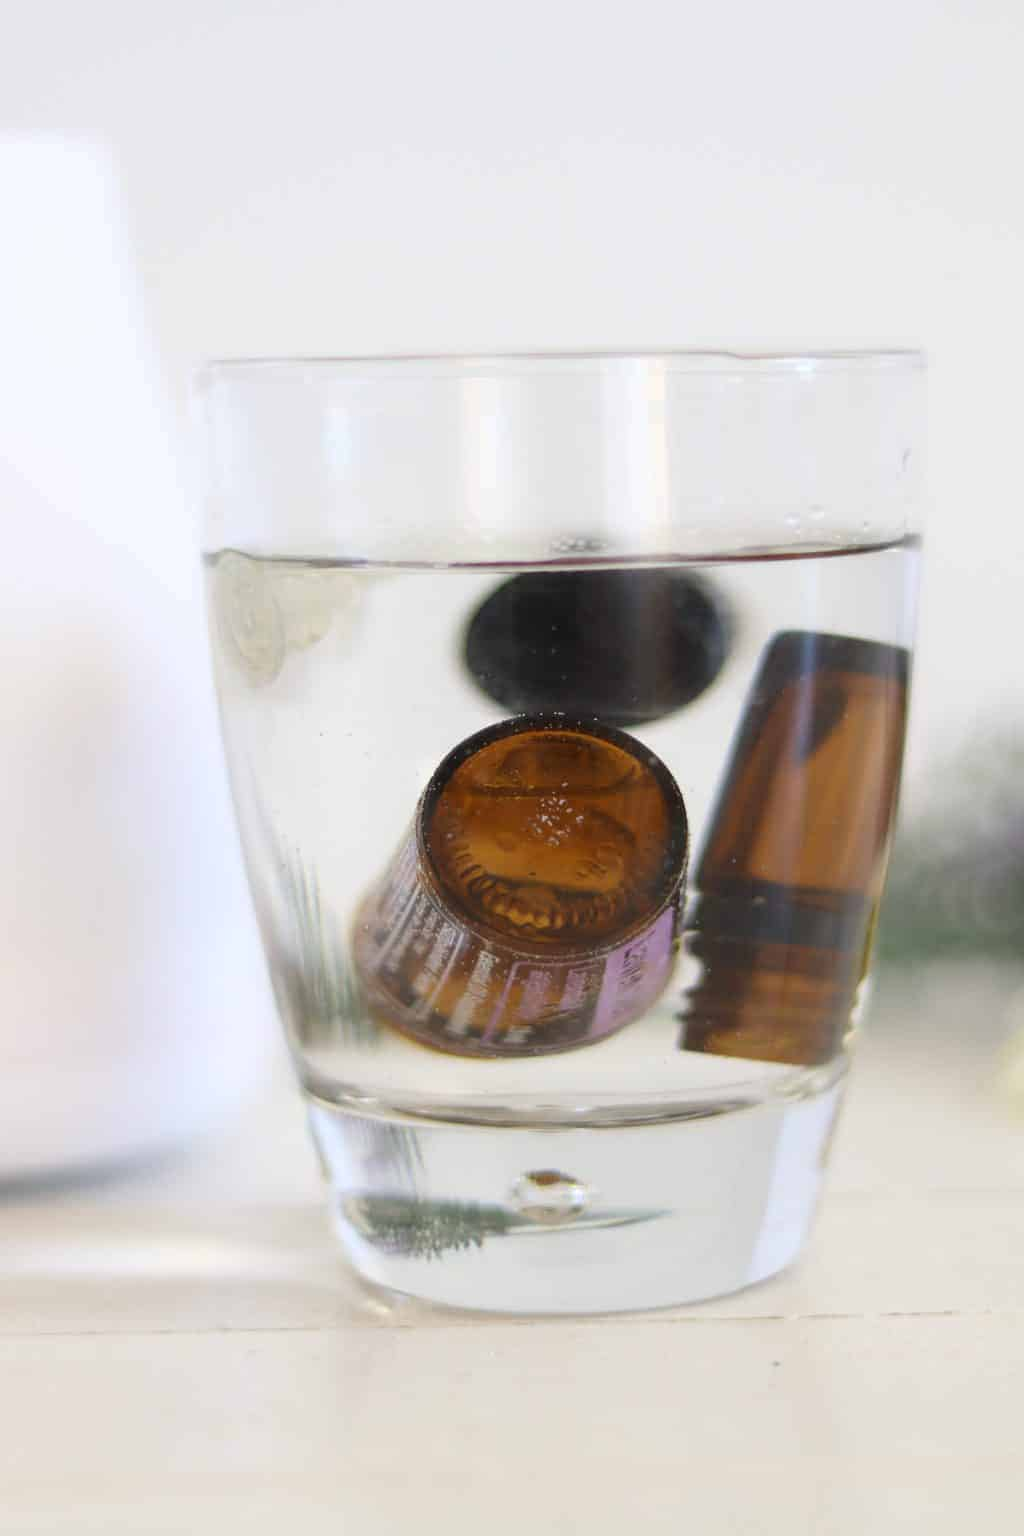 When your essential oil bottle is empty take the lid off and dropper top off and put it into a cup of water. Then put the empty bottle in upside down. This oil hack will assure you that you have every last drop of oil out and then you can use this water for your next diffuser blend.